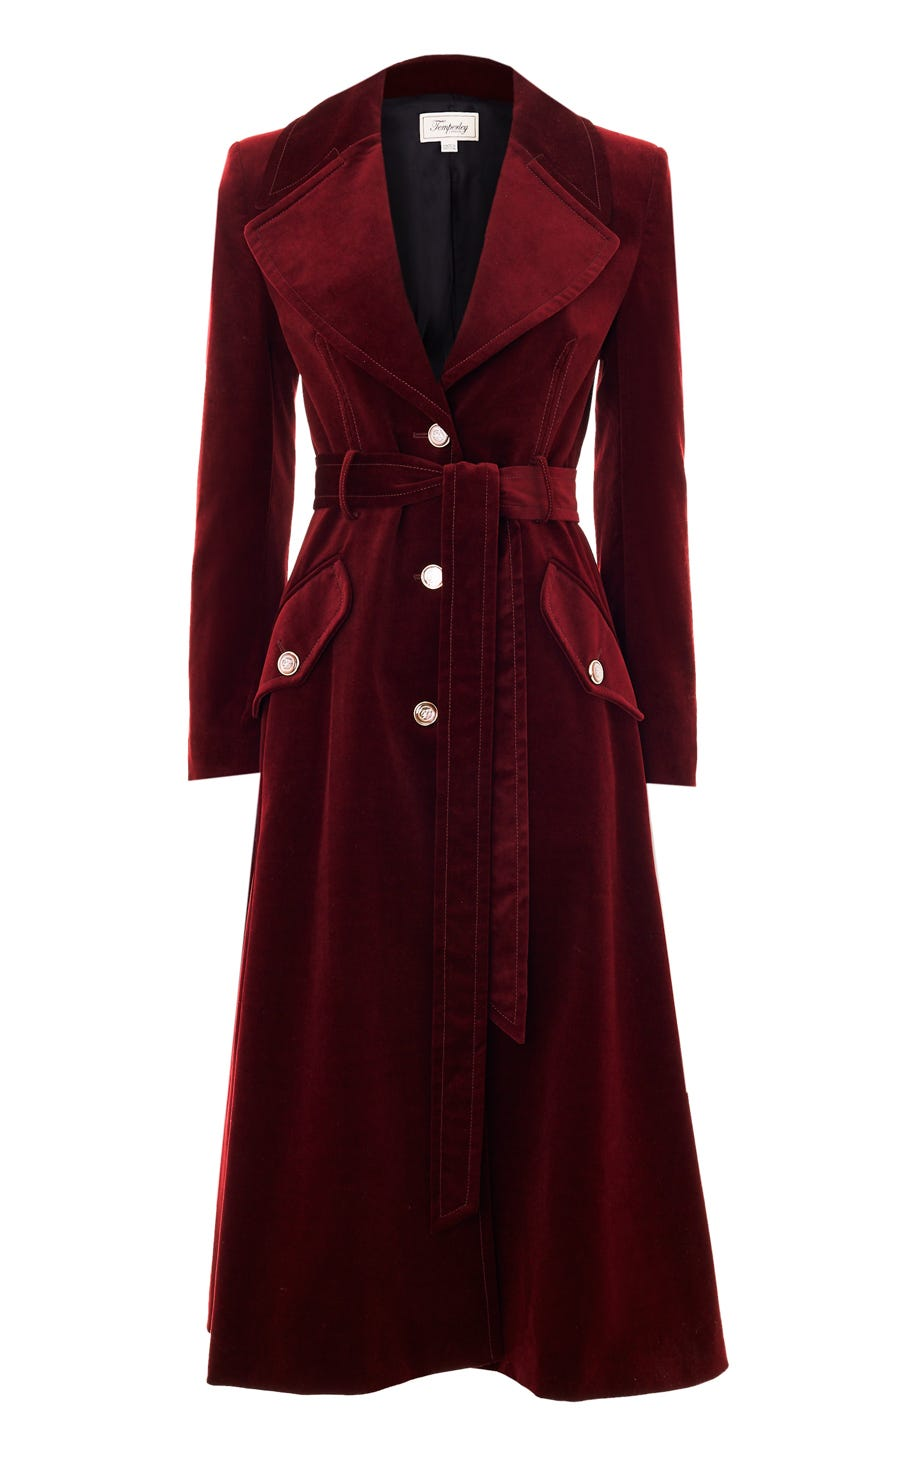 Esmeralda Tailored Coat